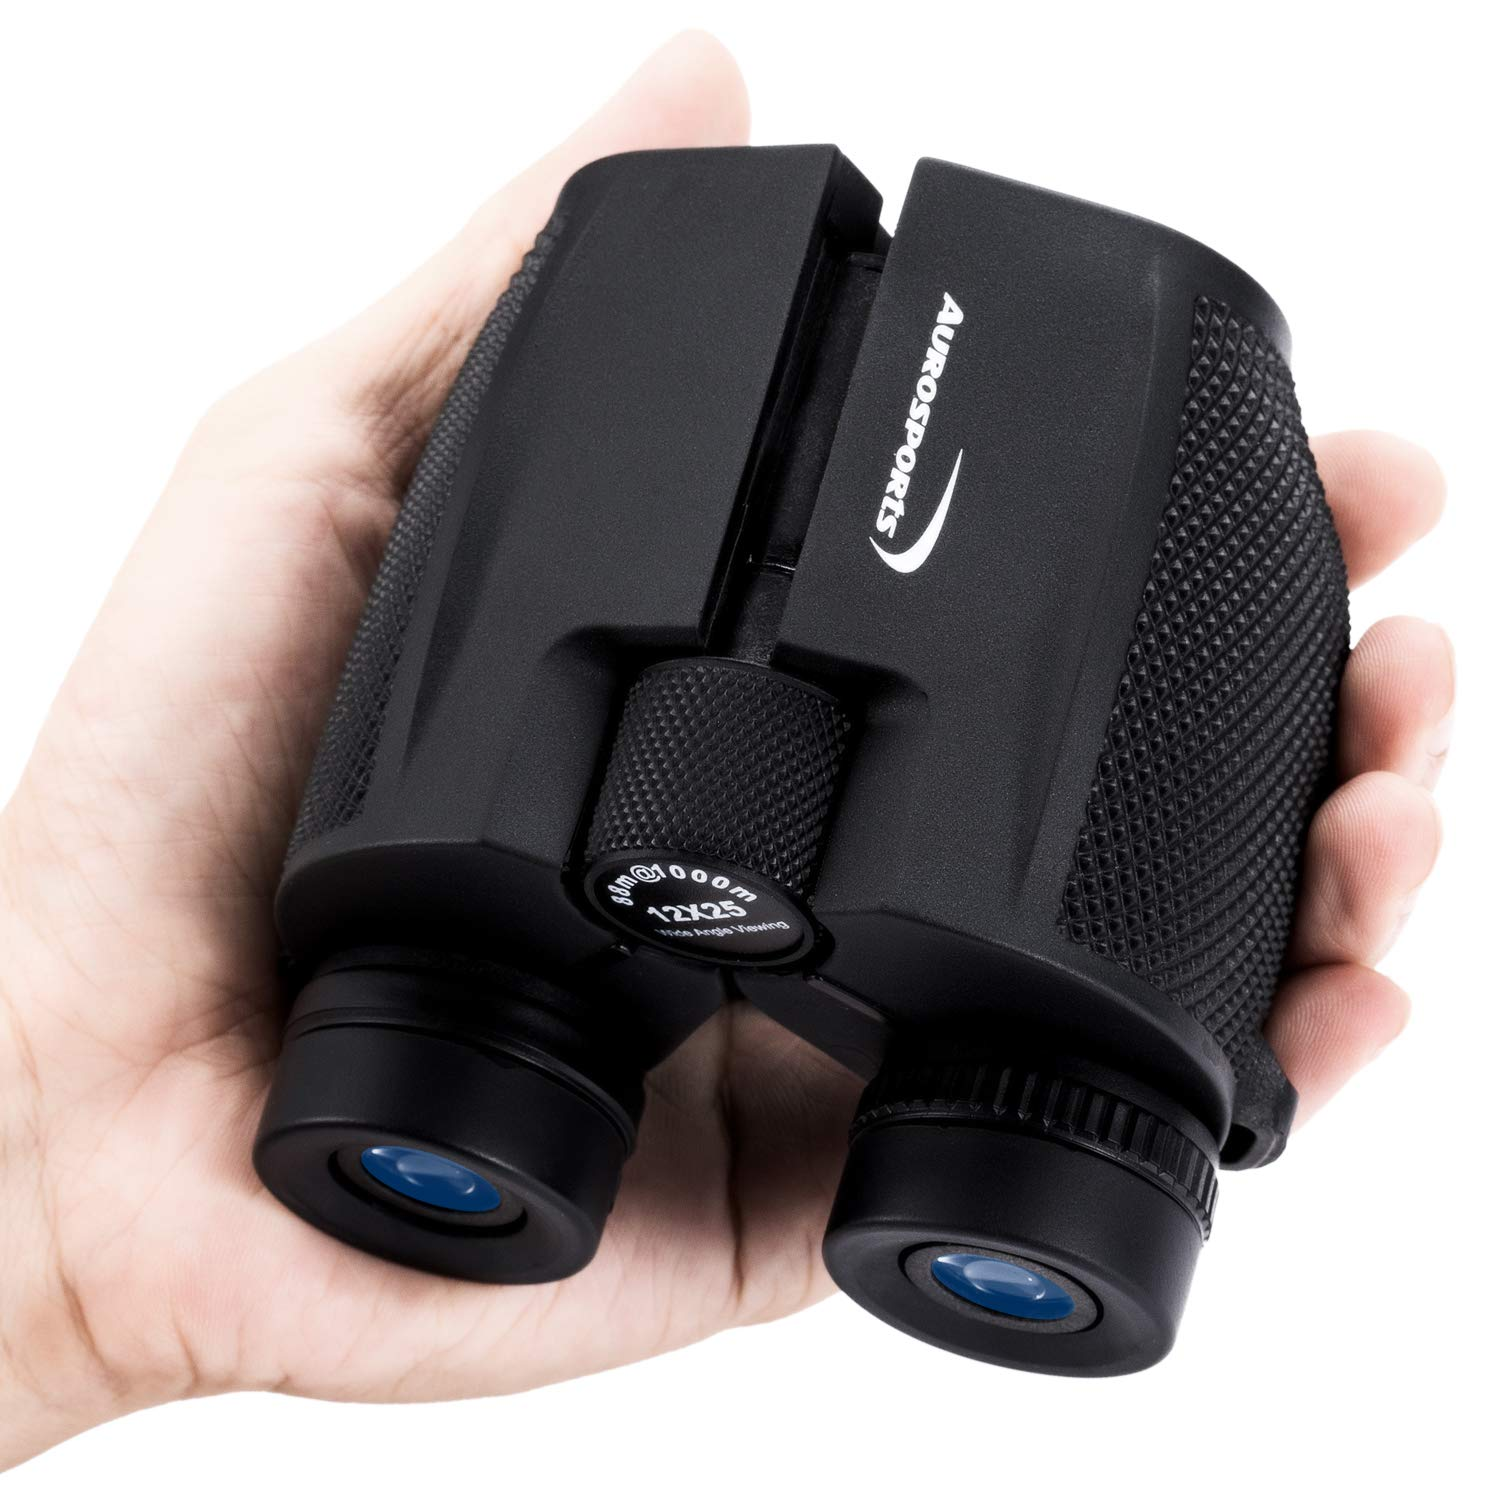 Aurosports 12x25 High Power Compact Binoculars Telescope for Adults Kids with Low Light Night Vision,Lightweight Folding Binocular for Bird Watching Hiking Travelling Concert Hunting by aurosports